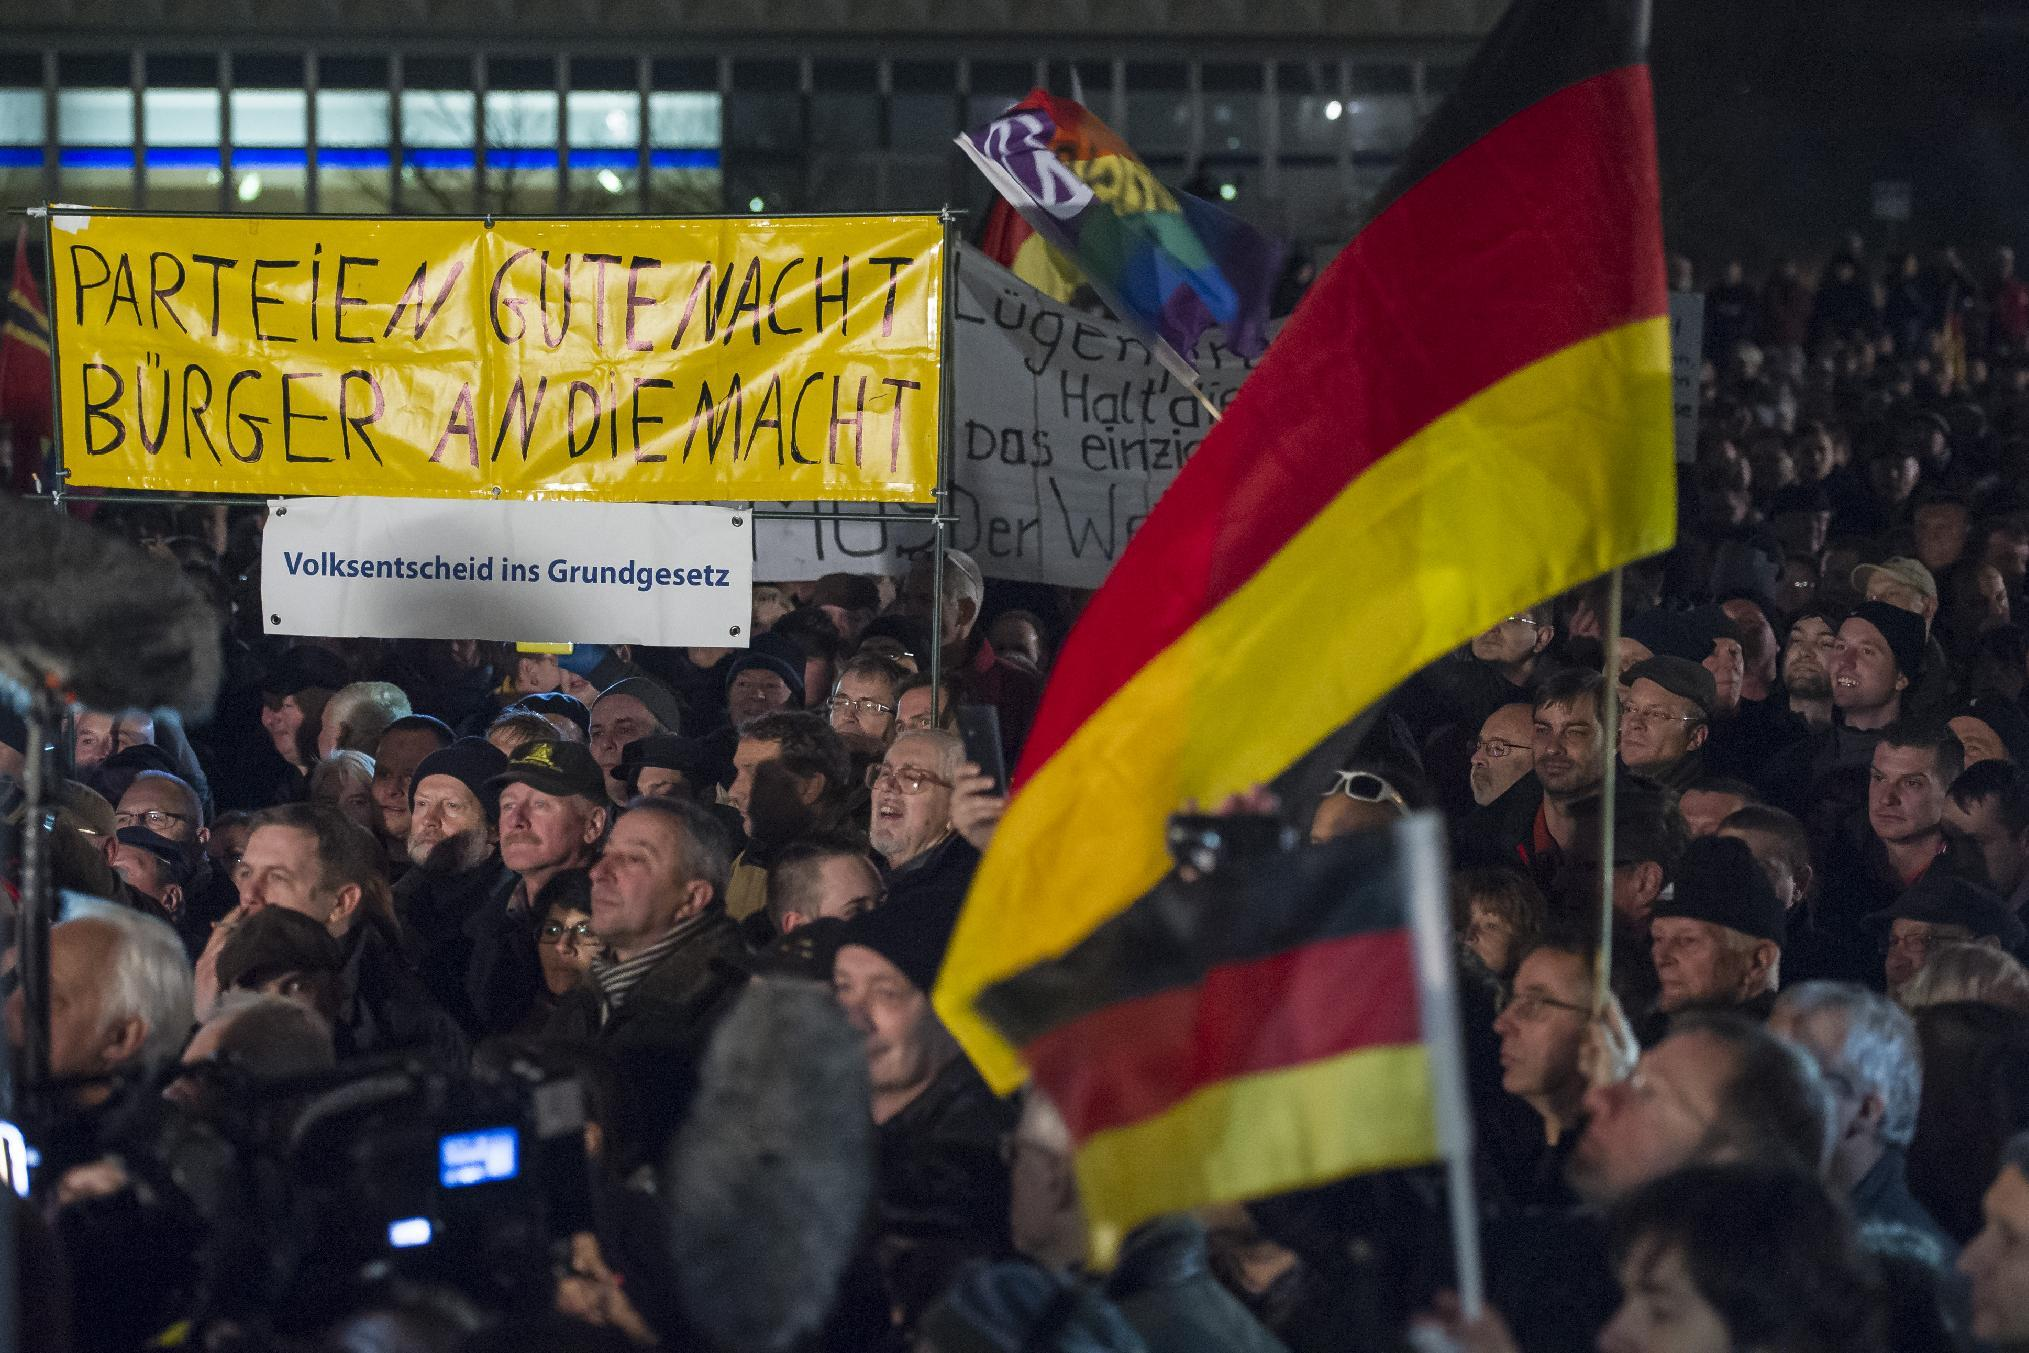 """Supporters of the """"Patriotische Europaeer Gegen die Islamisierung des Abendlandes"""" movement, which translates to """"Patriotic Europeans Against the Islamification of the Occident,"""" take part in a rally in Dresden, Germany on December 15, 2014 (AFP Photo/Jens Schlueter)"""